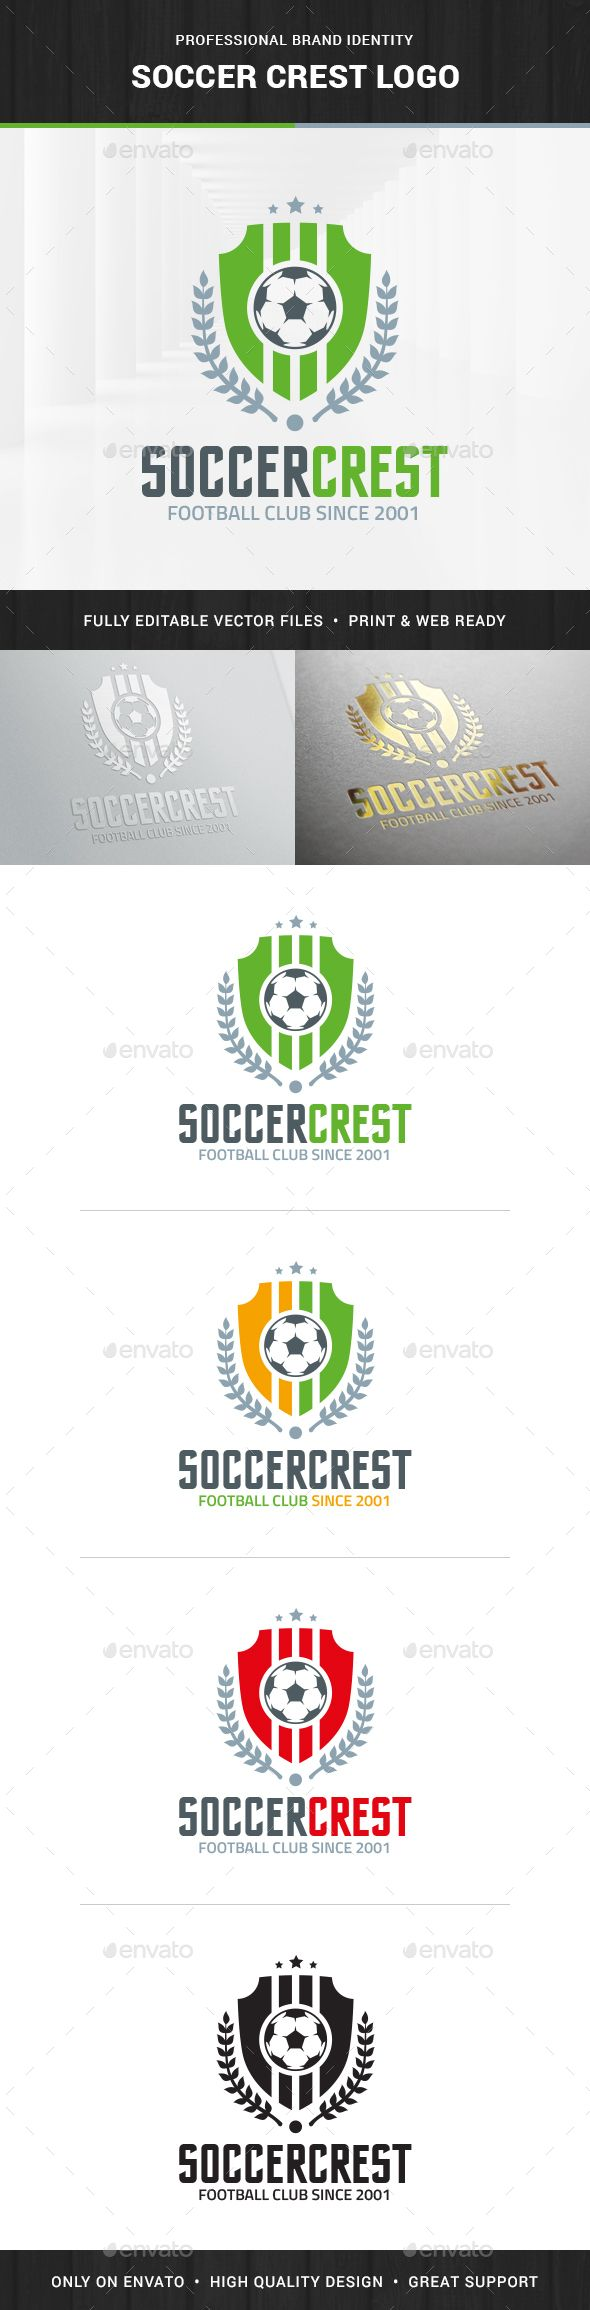 Soccer Crest Logo Template — Transparent PNG #royal #laurel wreath • Available here → https://graphicriver.net/item/soccer-crest-logo-template/14464641?ref=pxcr